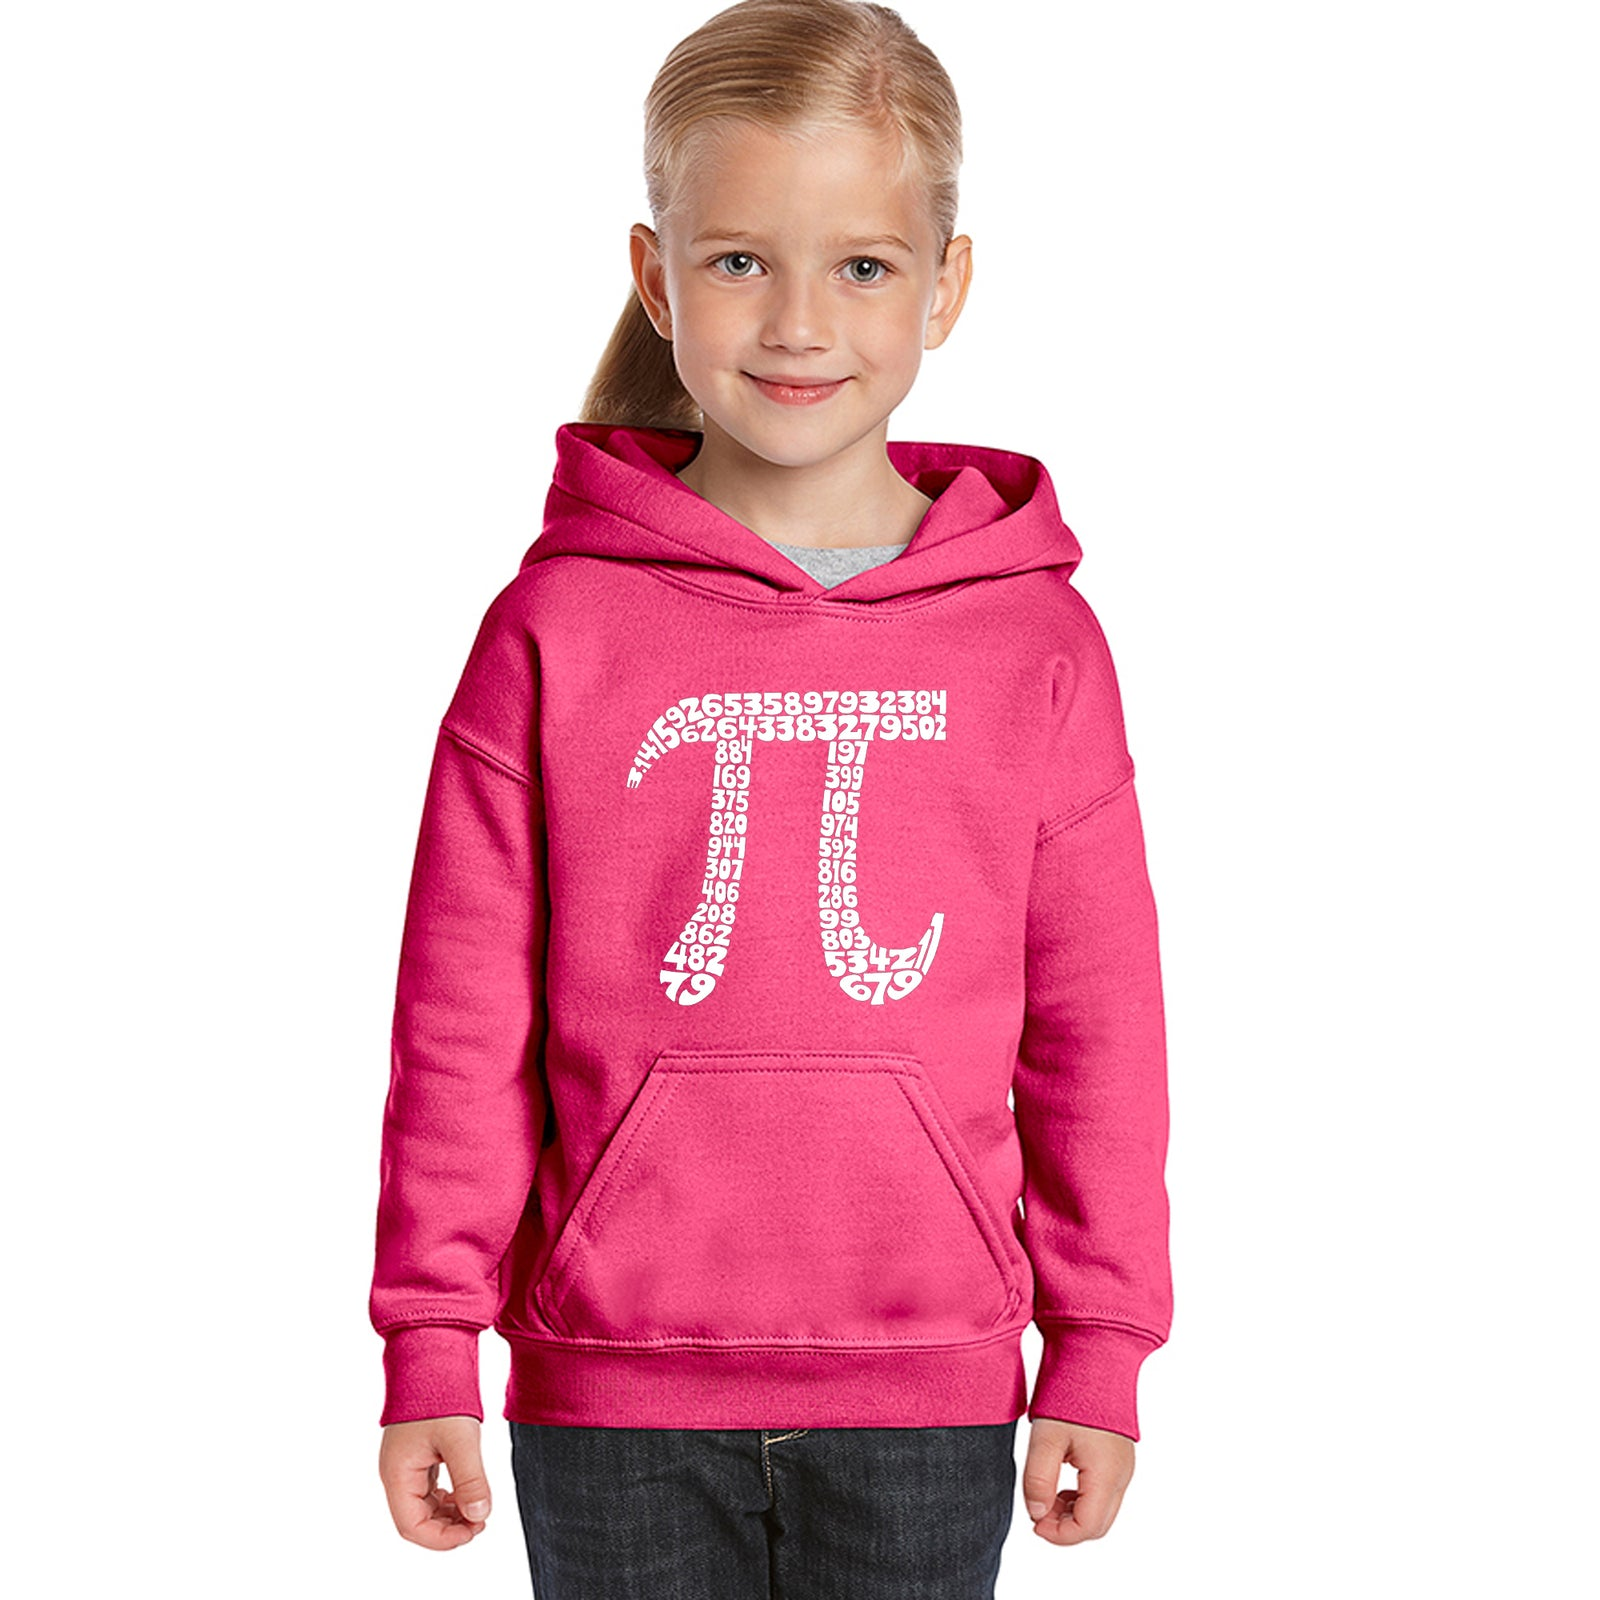 Girl's Hooded Sweatshirt - THE FIRST 100 DIGITS OF PI